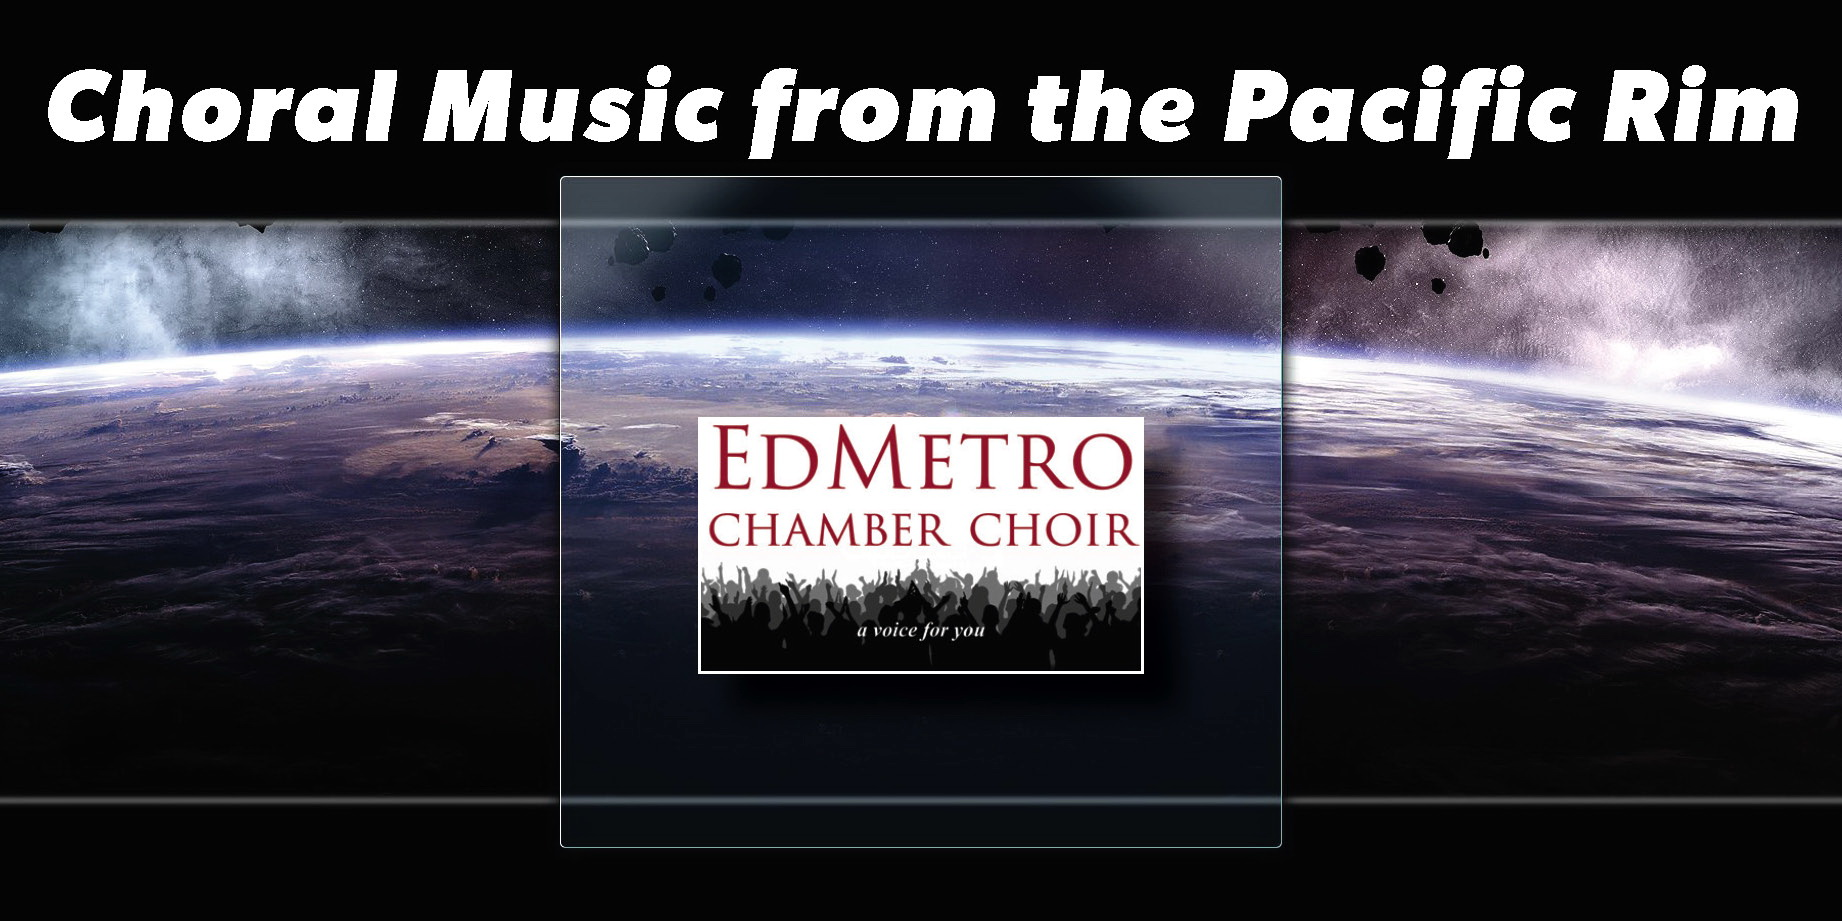 Choral Music from the Pacific Rim